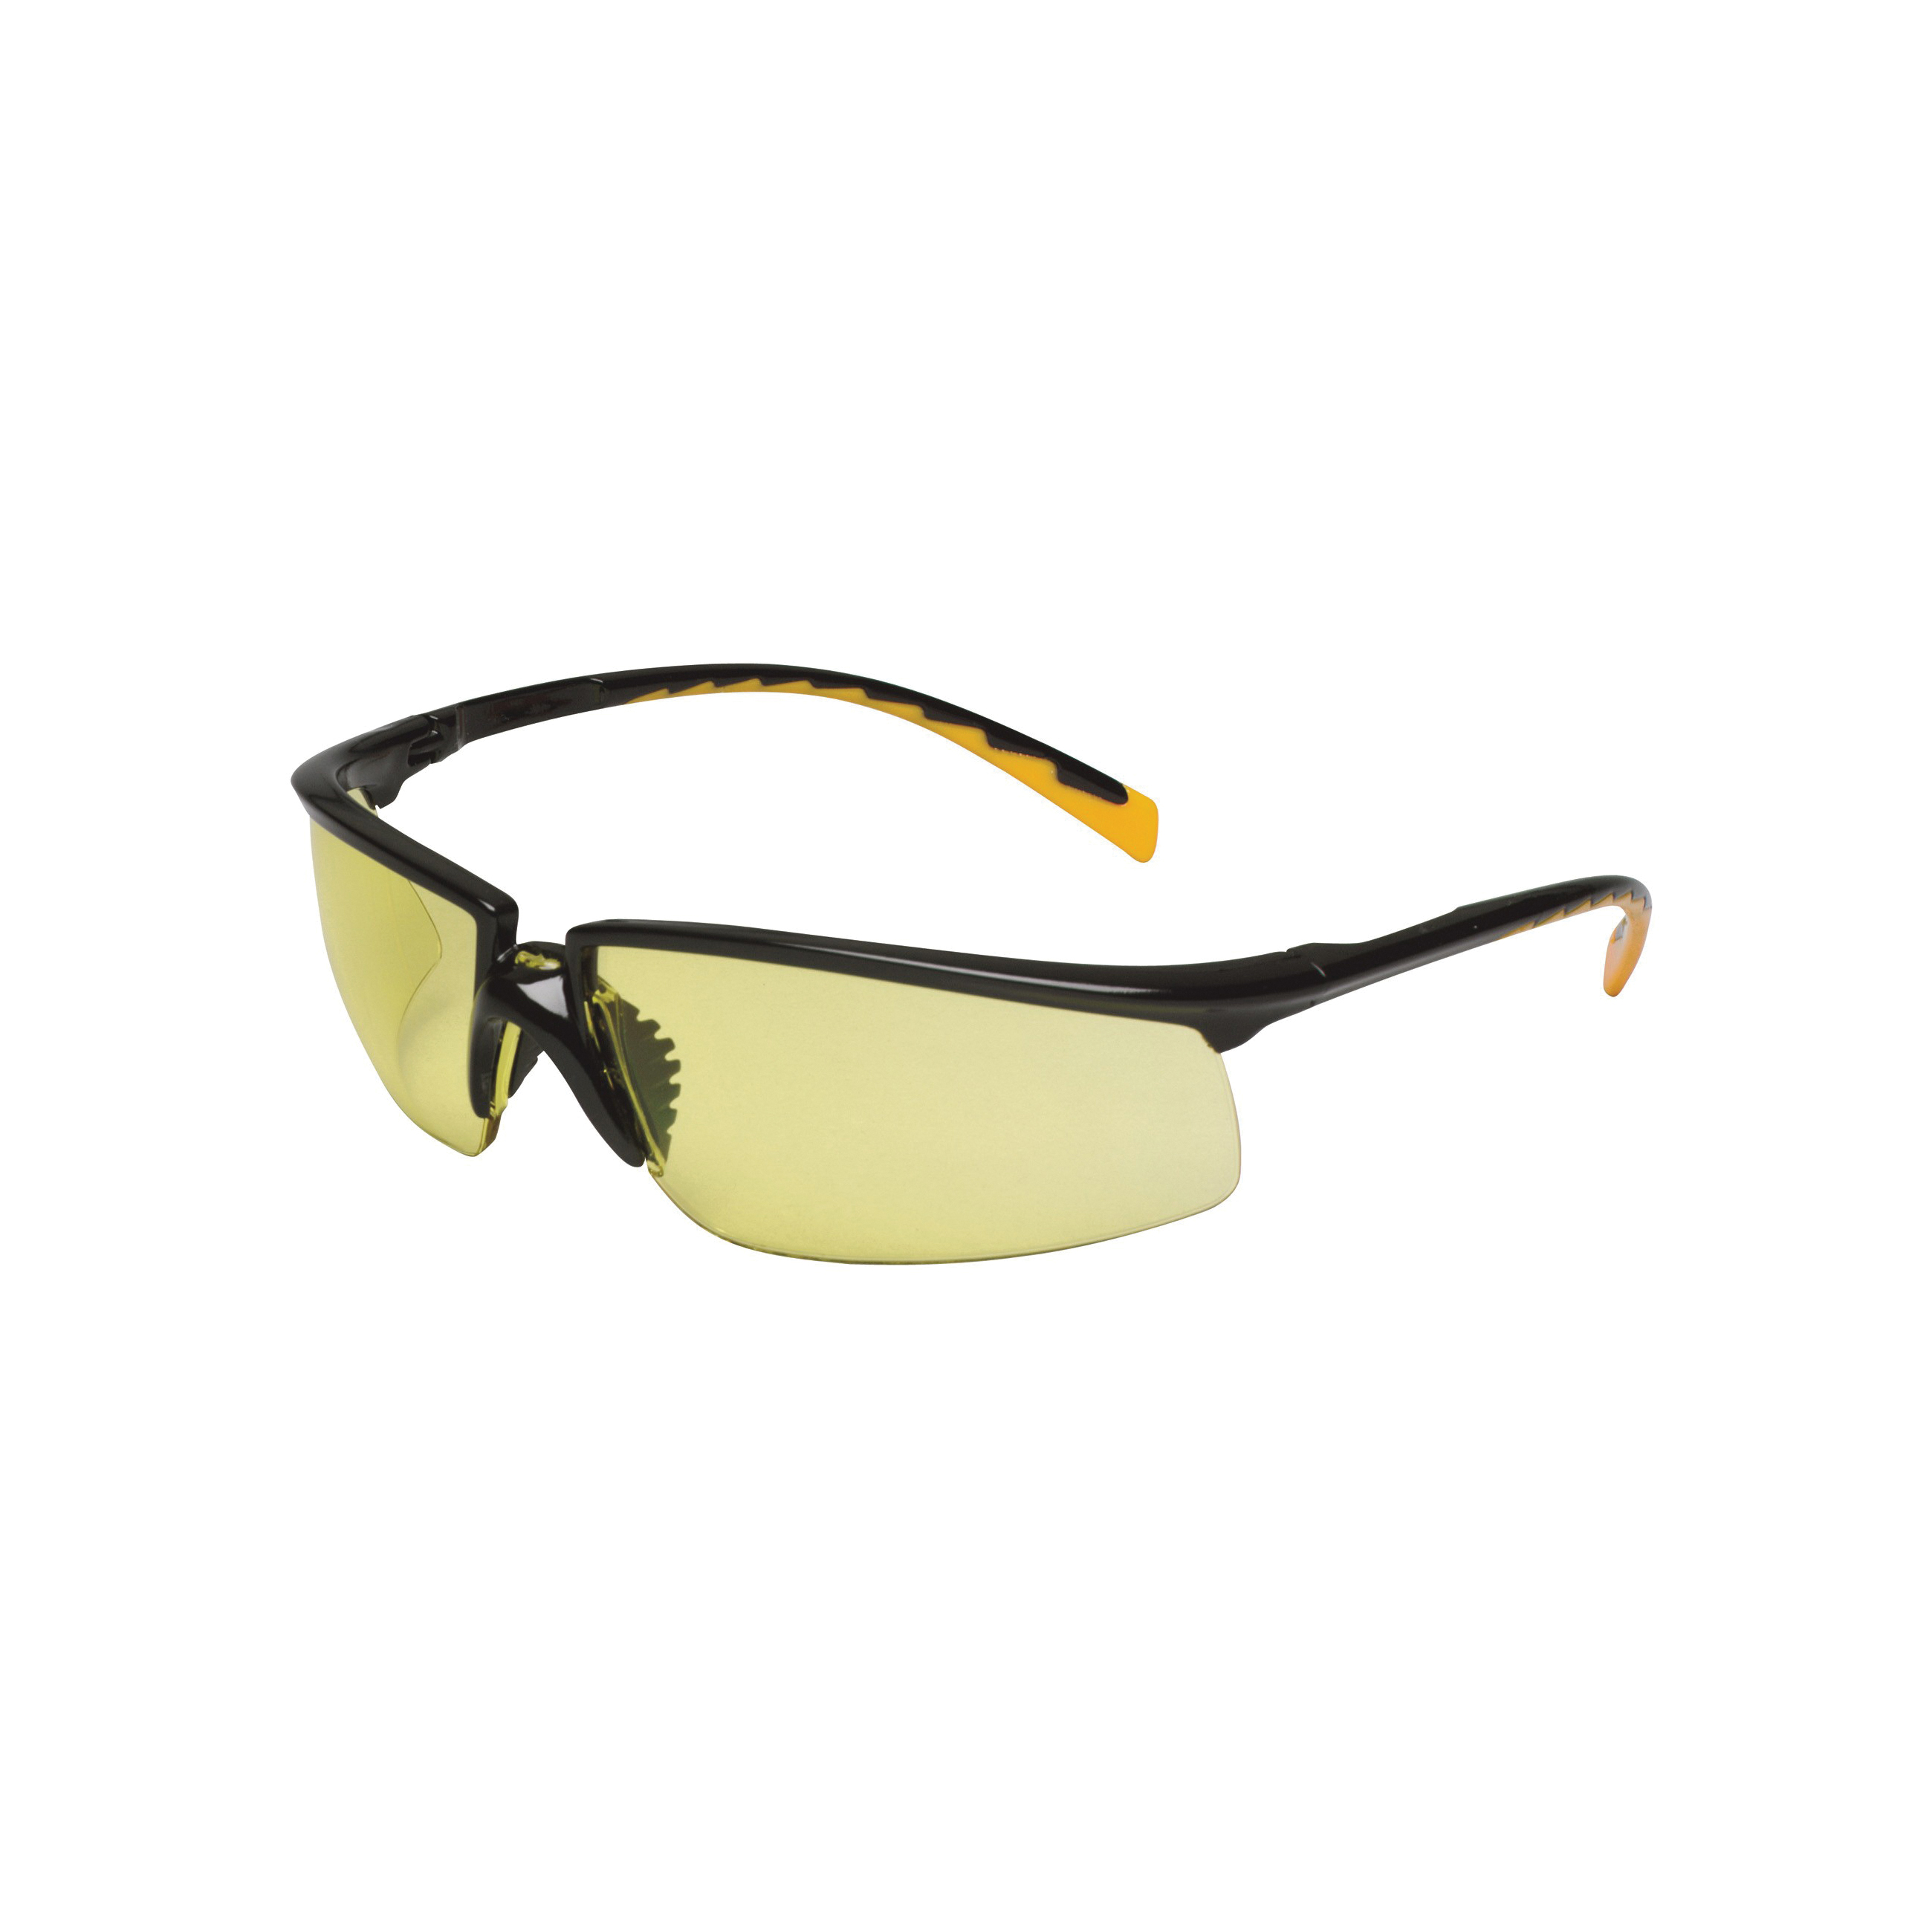 3M™ Privo™ 078371-62089 12263-00000-20 Value Range Protective Eyewear, Anti-Fog Amber Lens, Half Framed Black Plastic Frame, Polycarbonate Lens, Specifications Met: ANSI Z87.1-2003, CSA Z94.3-2007